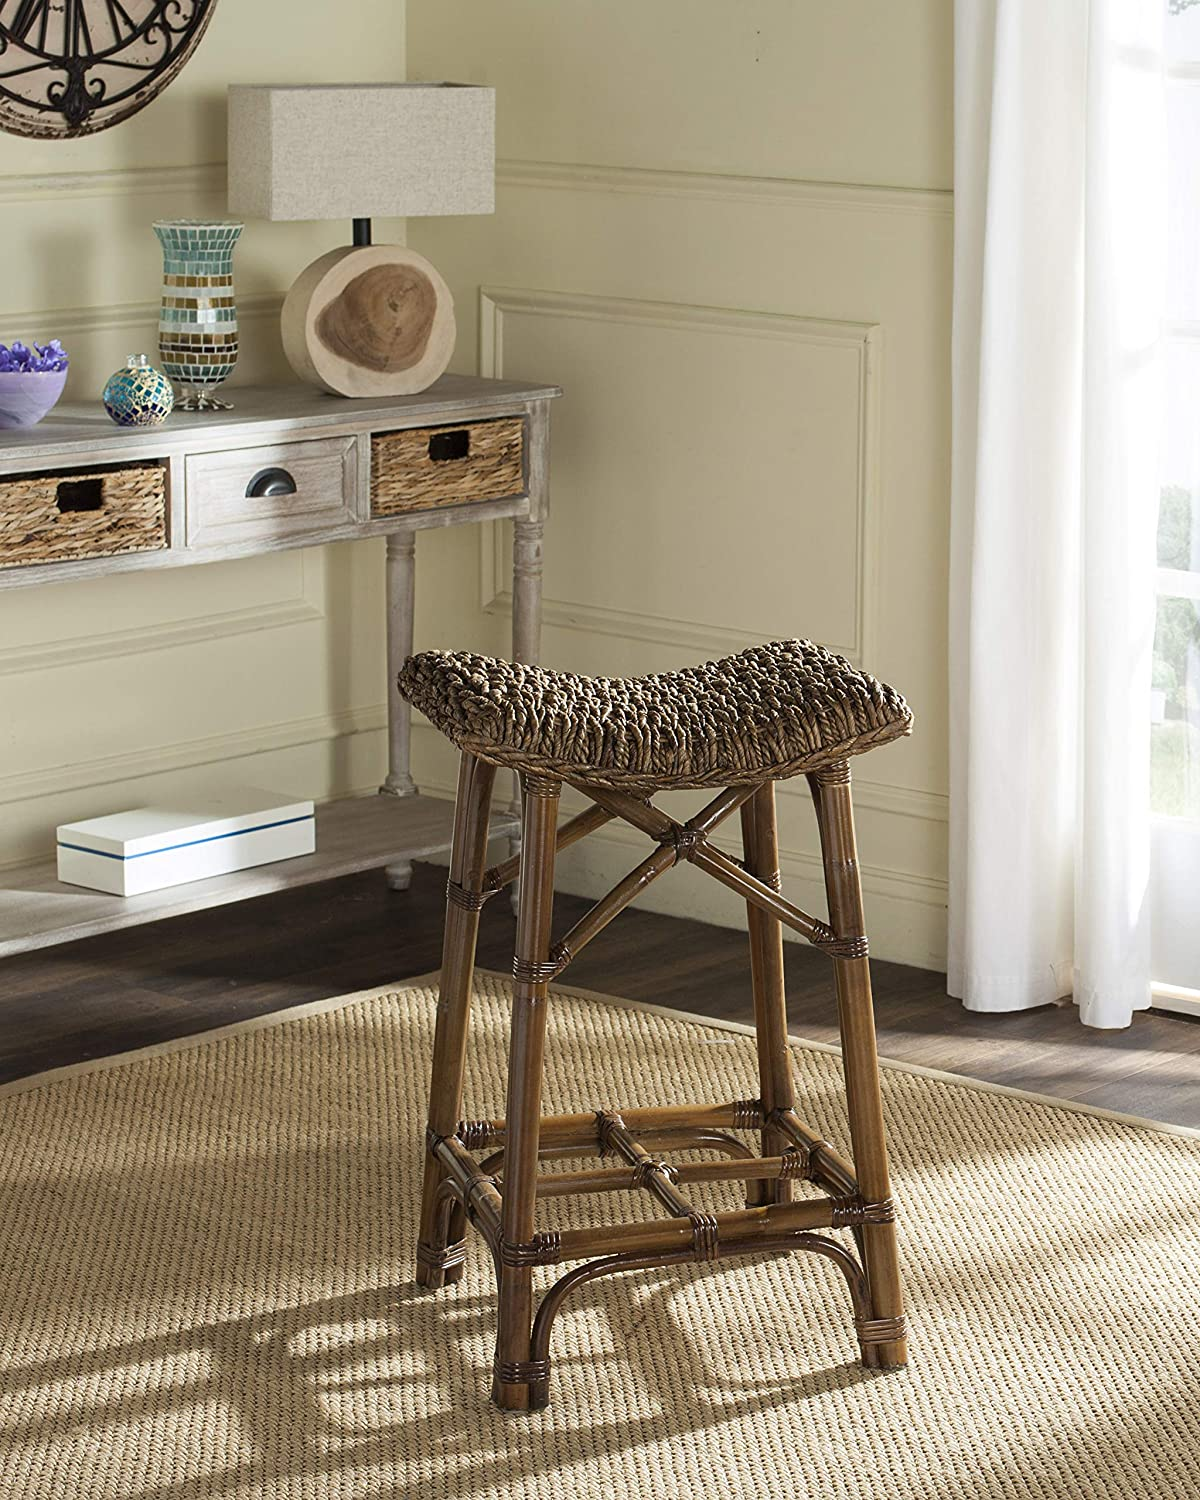 Safavieh Home Collection Ramiro Natural Brown Wicker 27.6-inch Barstool